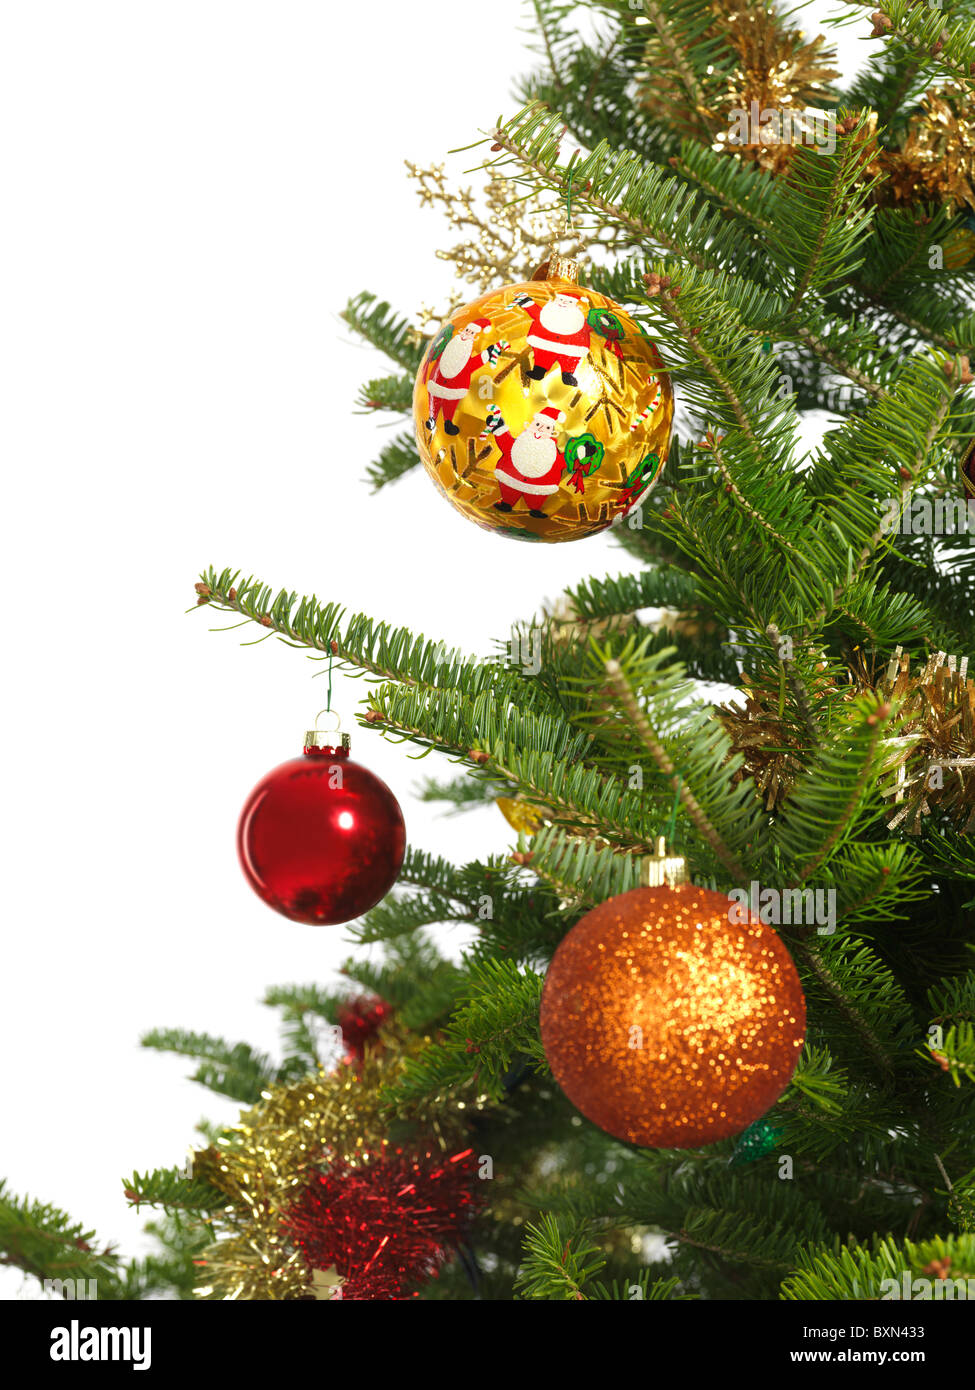 Colorful ornament on a Christmas tree isolated on white background - Stock Image